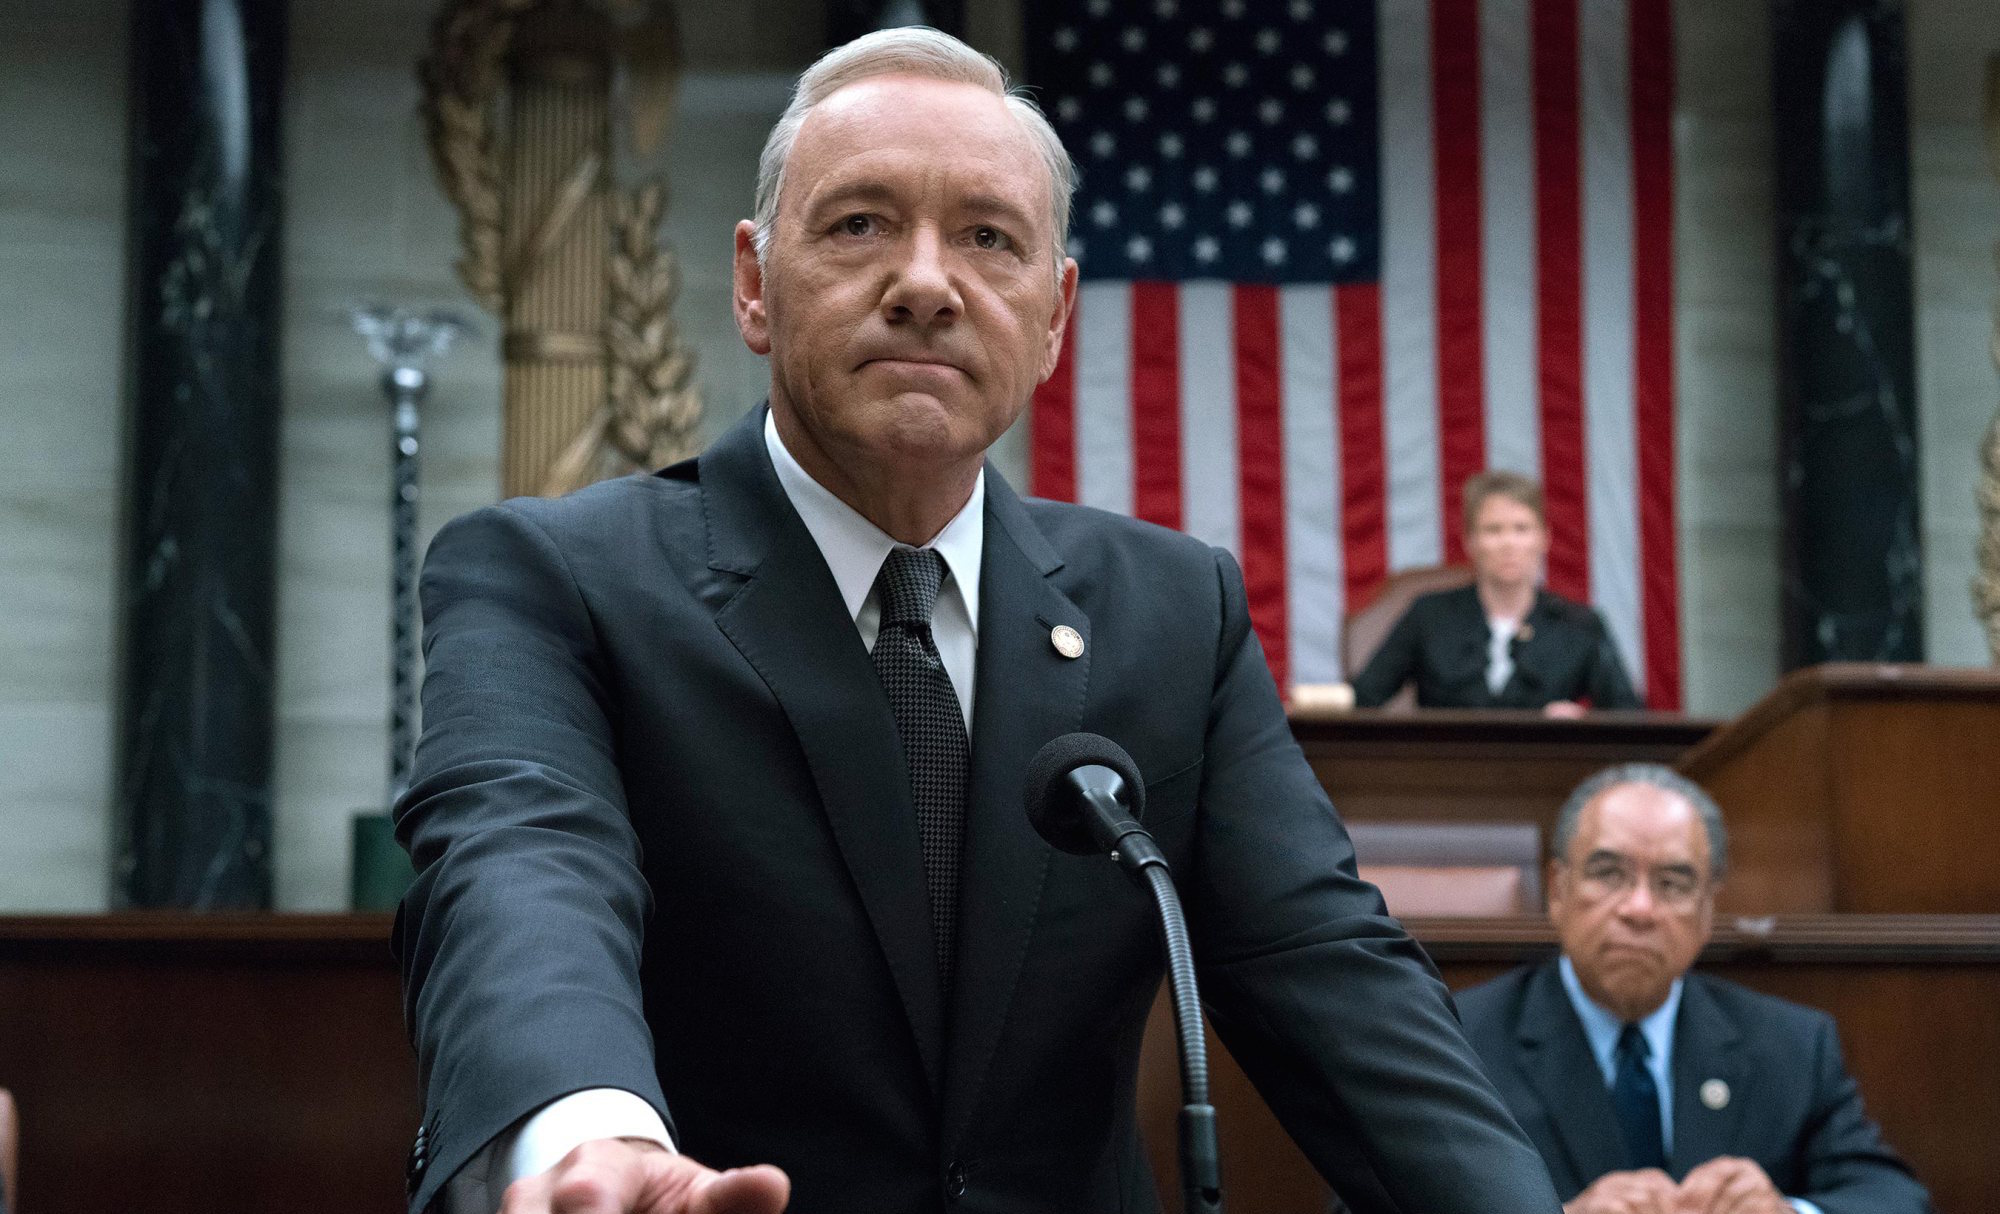 Eight House of Cards Employees Accuse Kevin Spacey